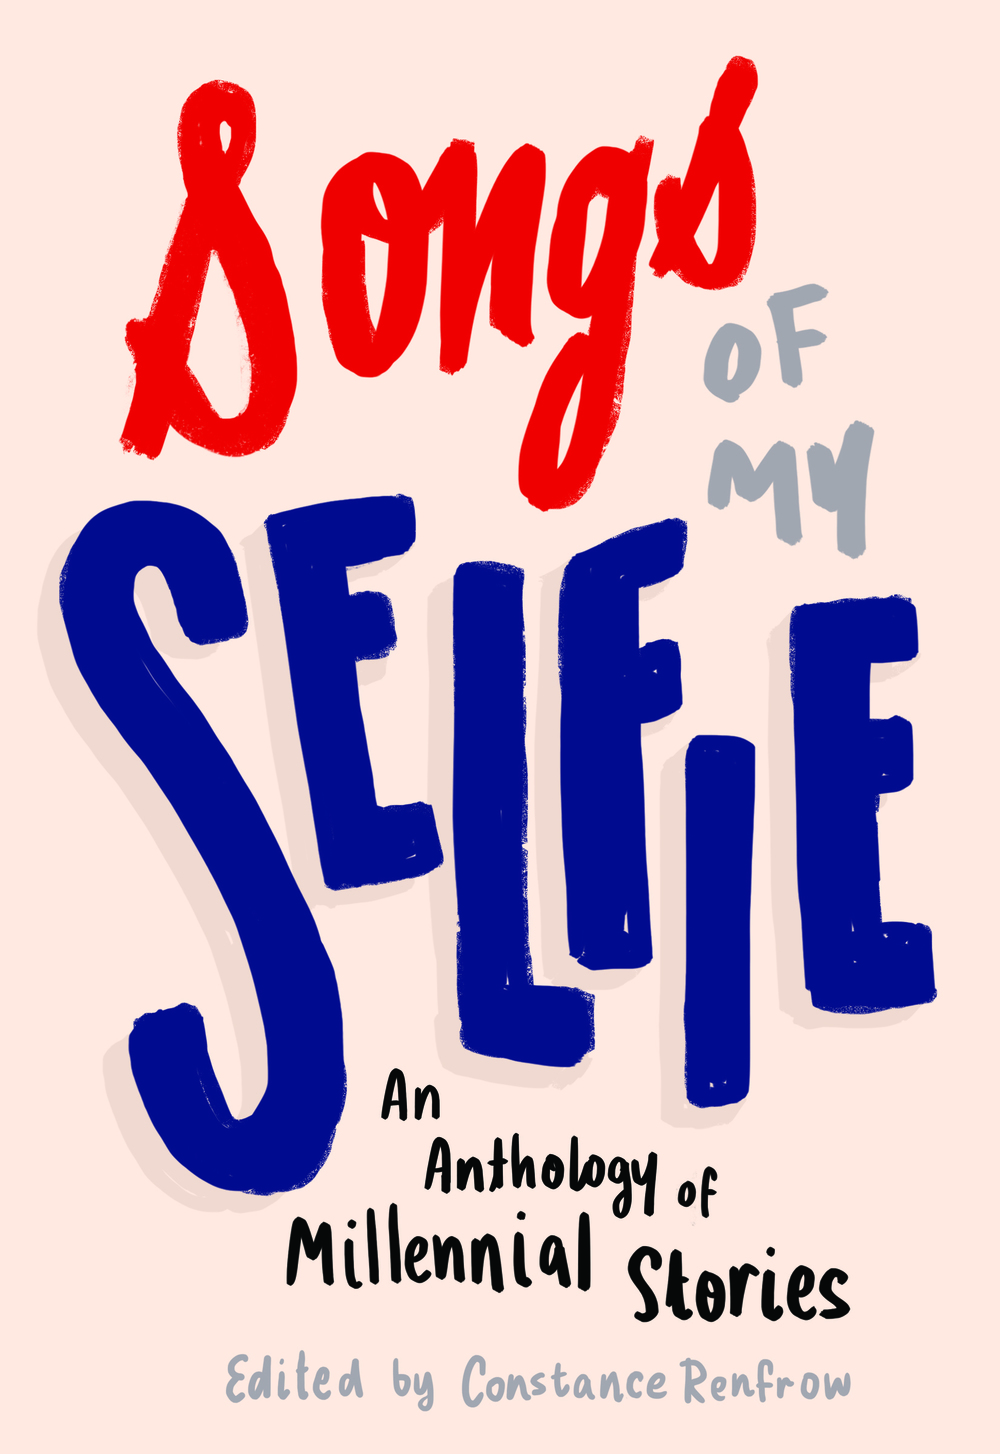 Songs of My Selfie  (Three Rooms Press, April 2016, 978-1-941110-49-0)